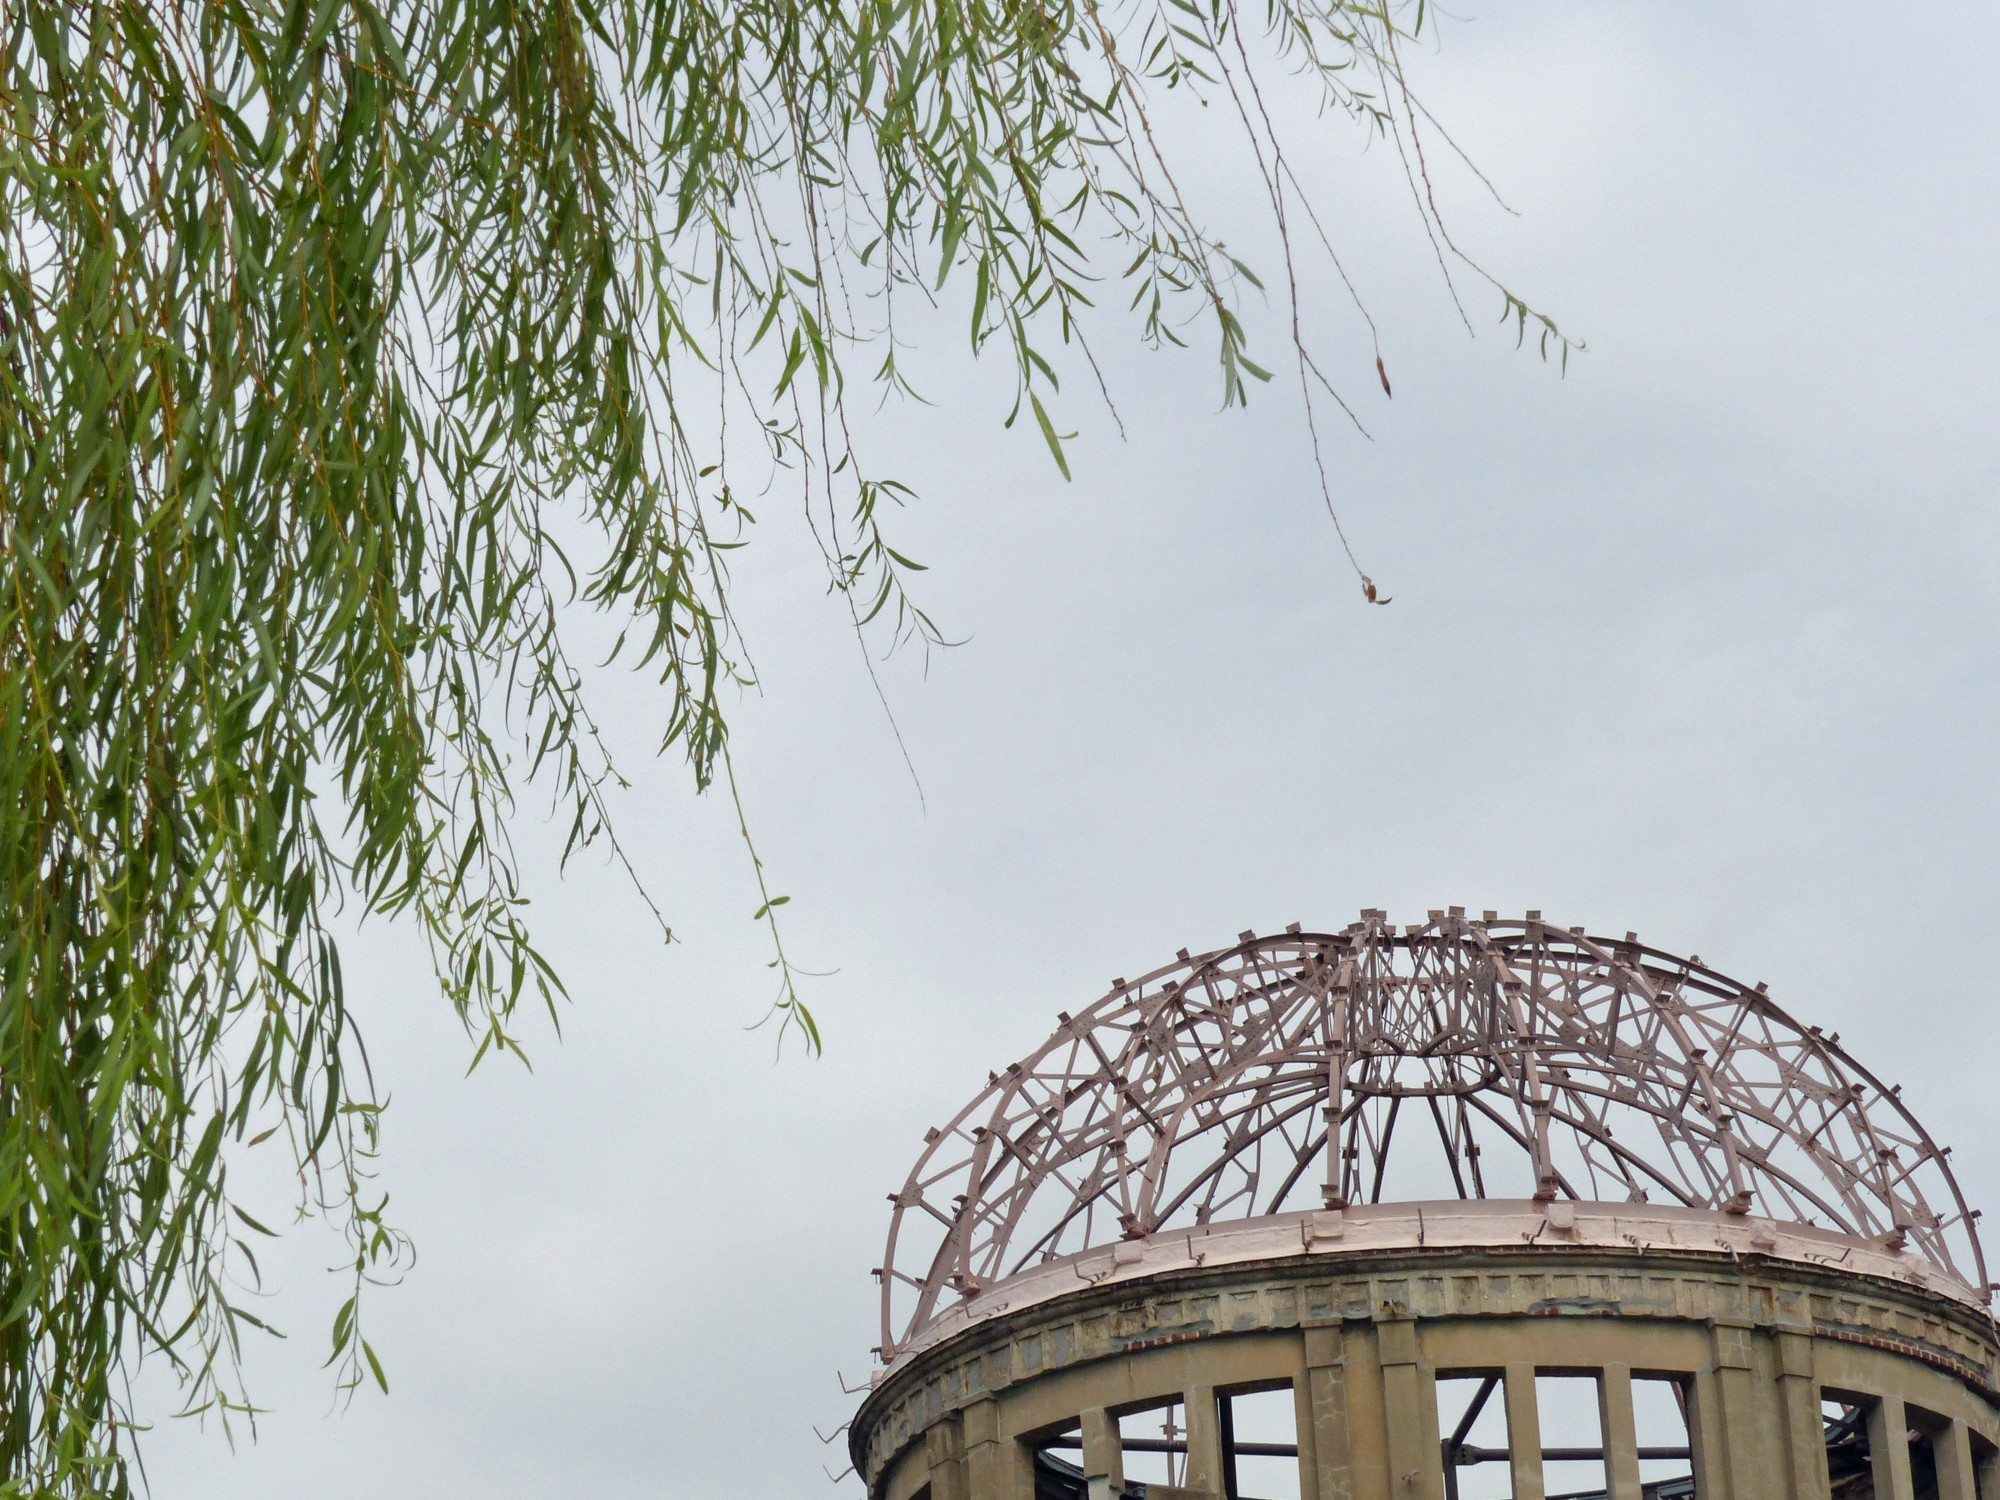 Roof of the Atomic Bomb Dome